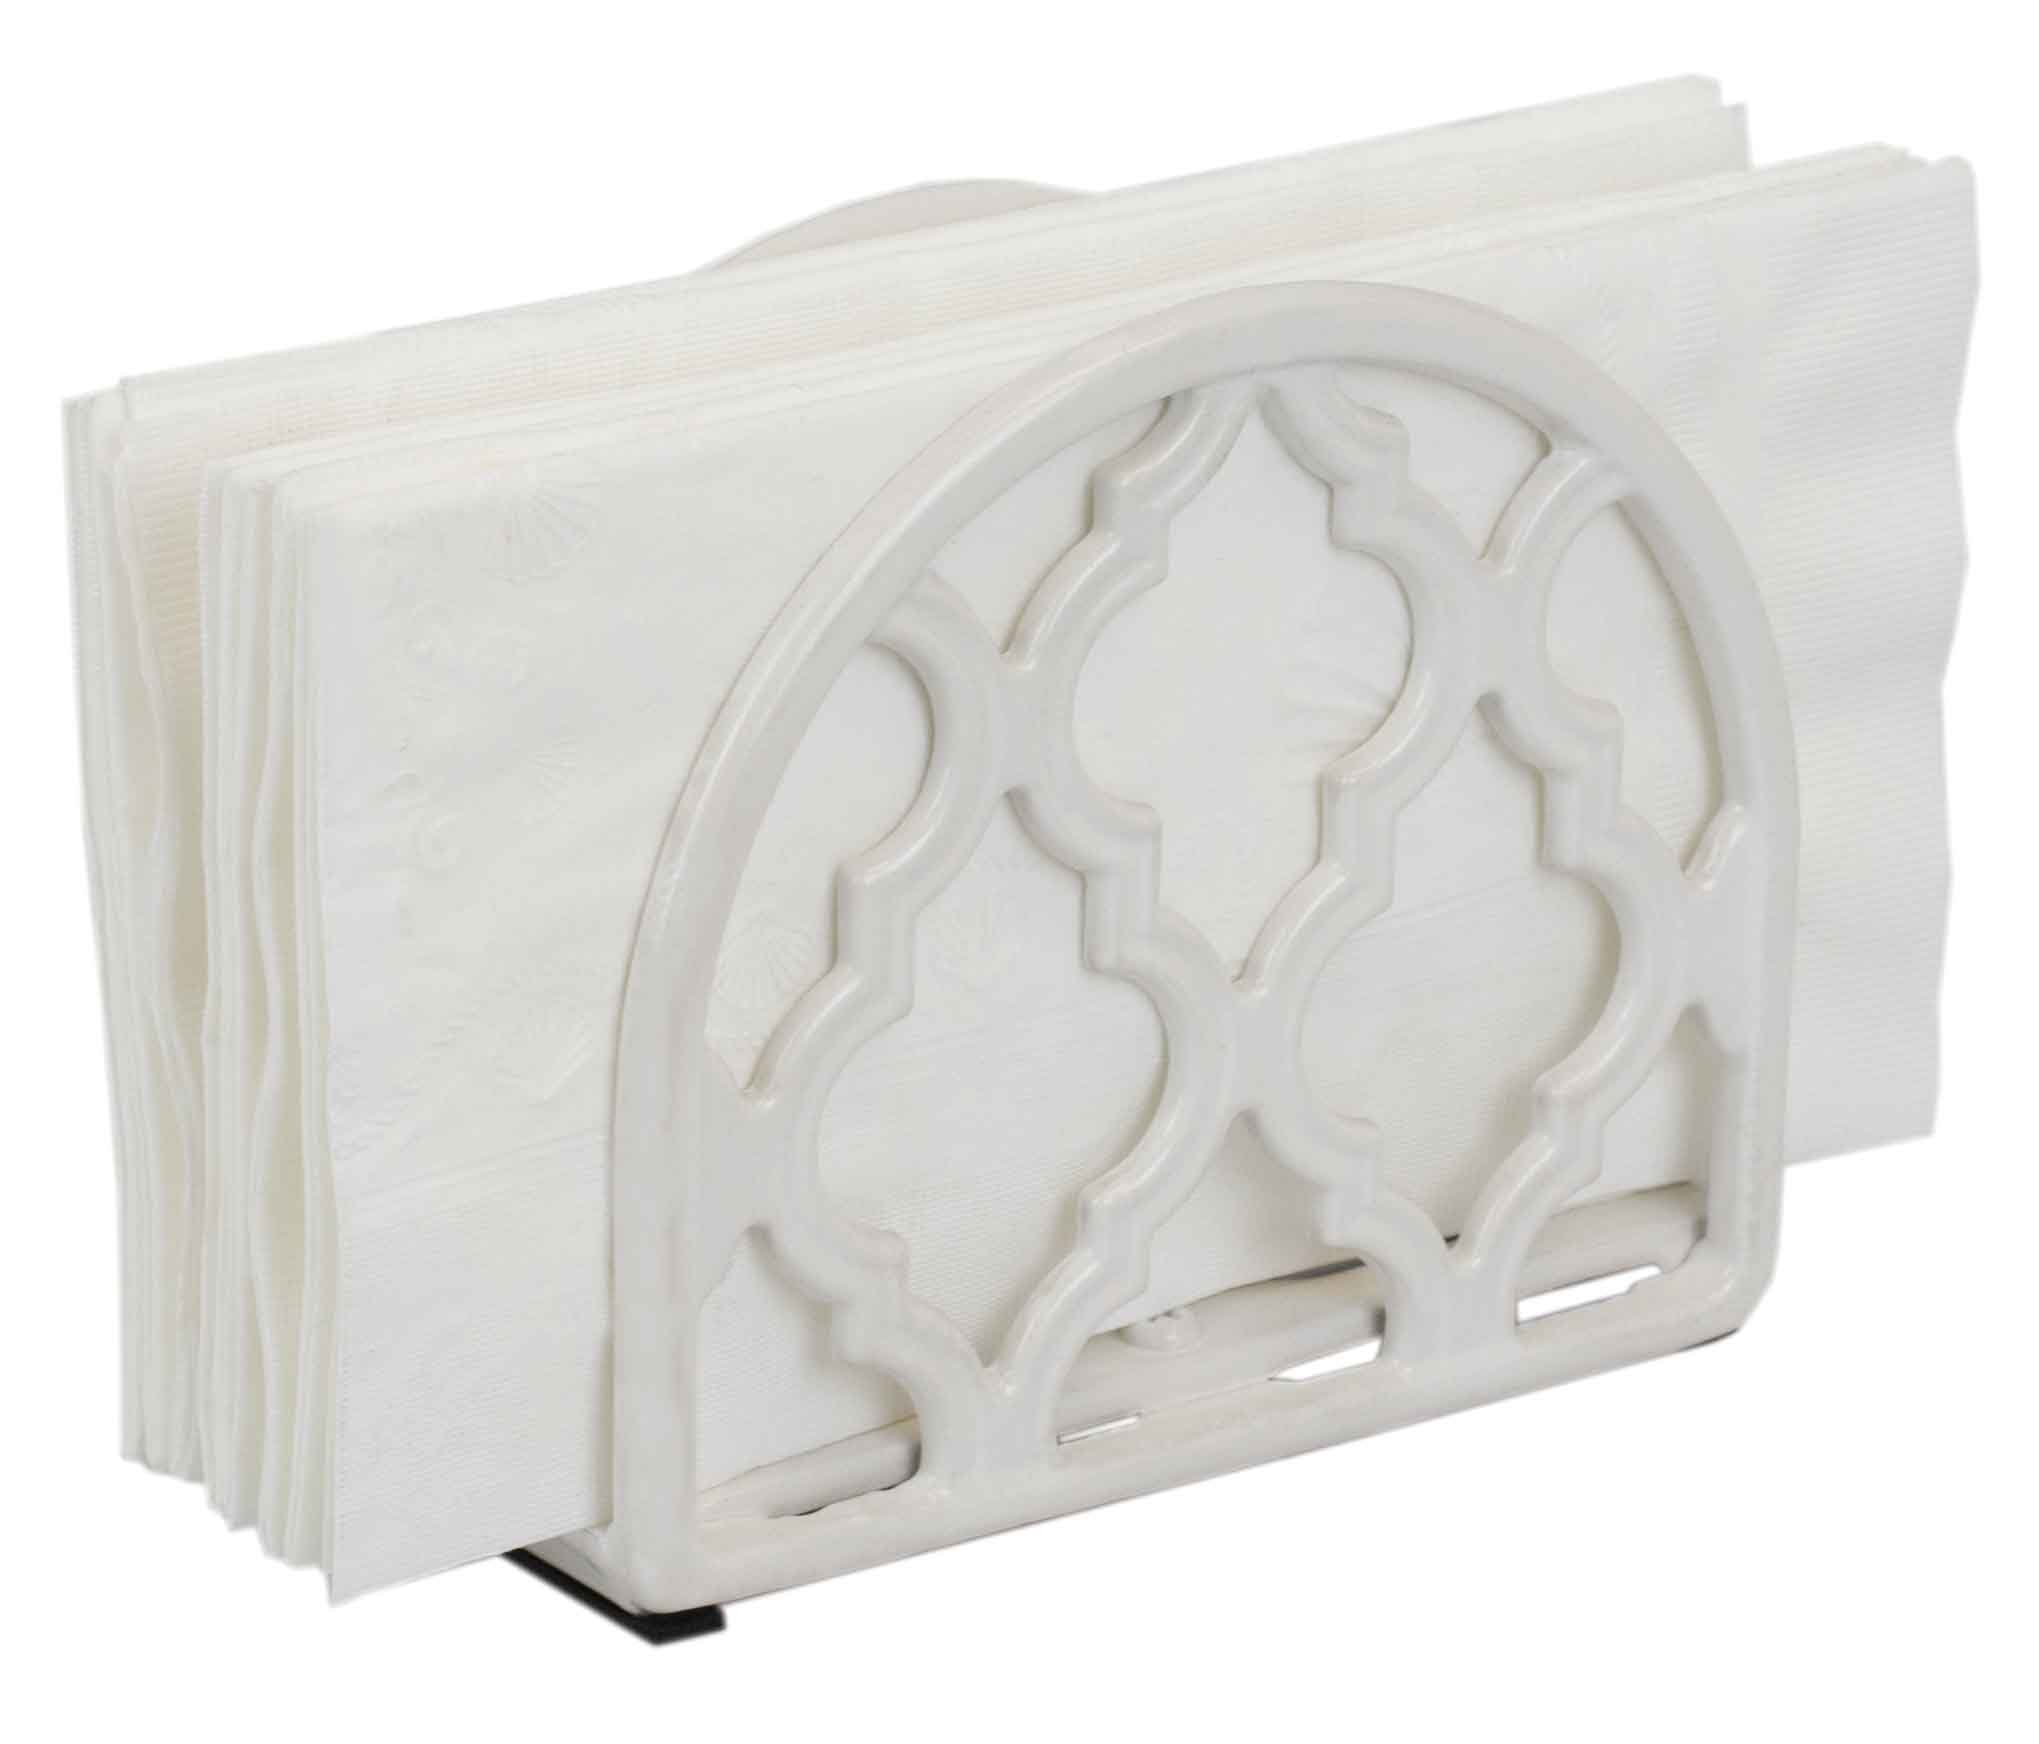 Home Basics Lattice Collection Cast Iron Napkin Holder (White)